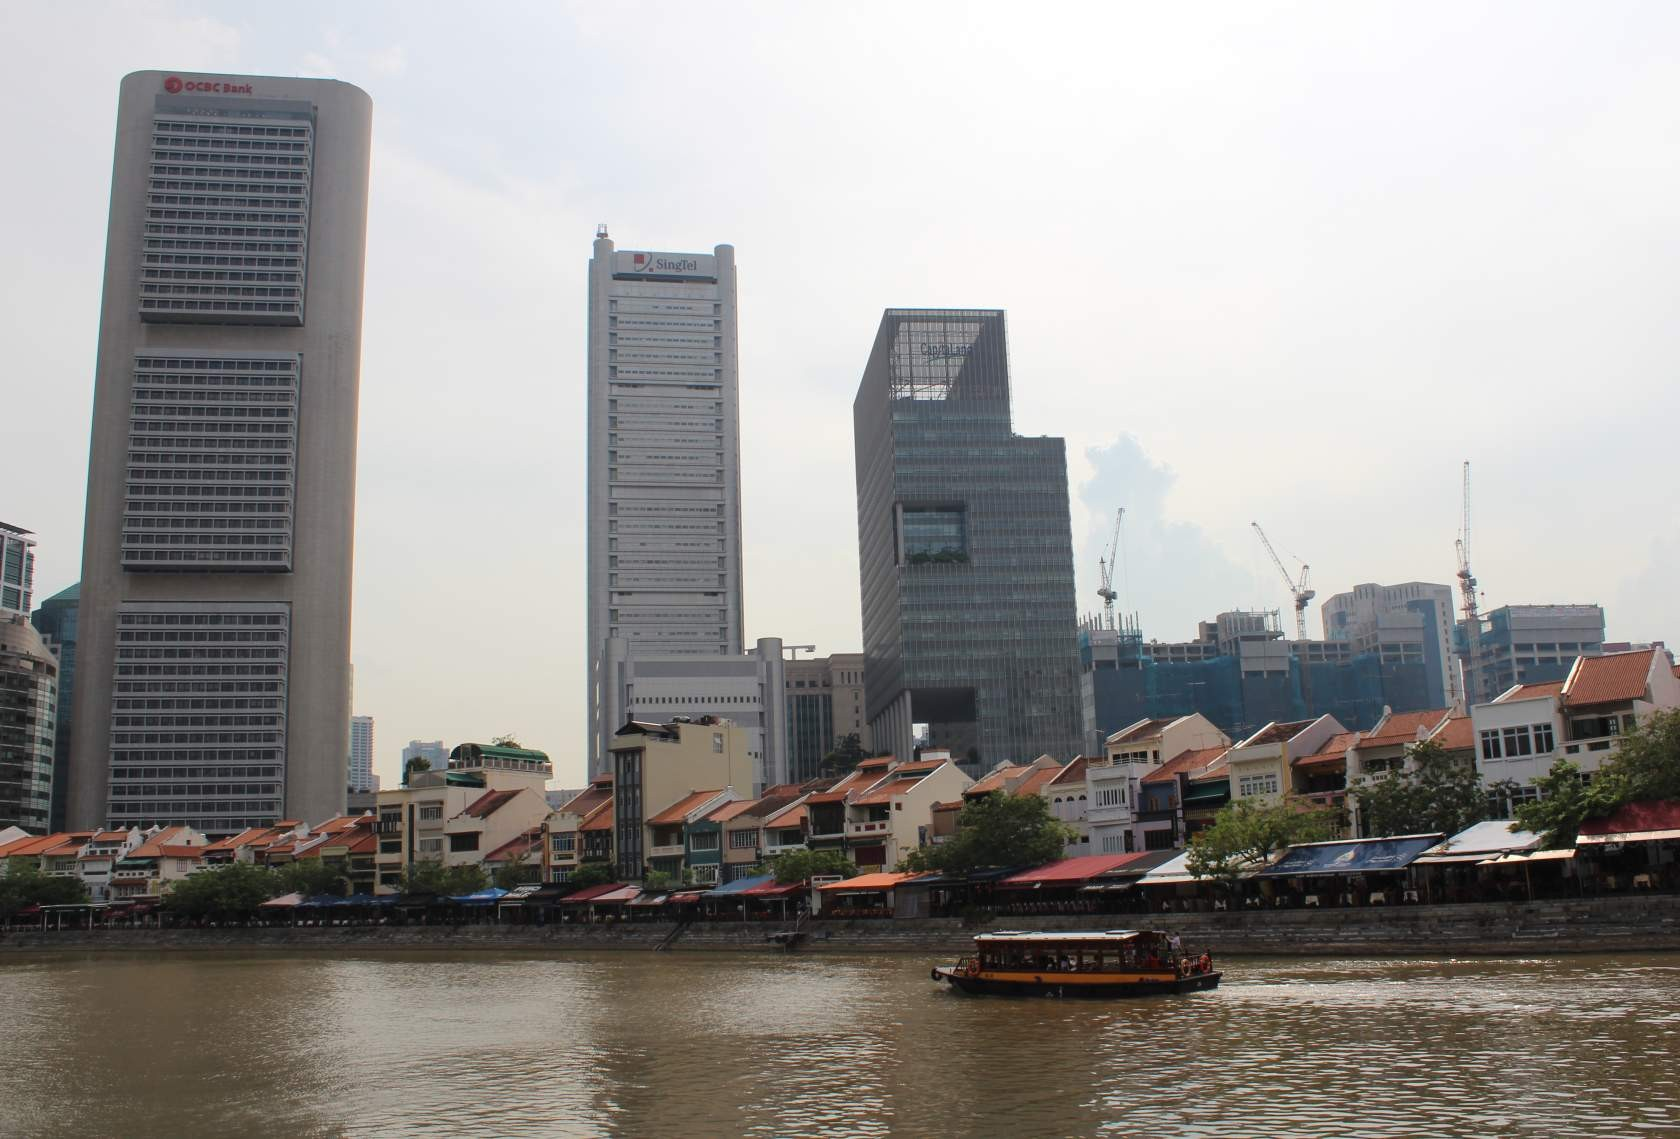 Boat Quay vor dem Central Business District (CBD) IV